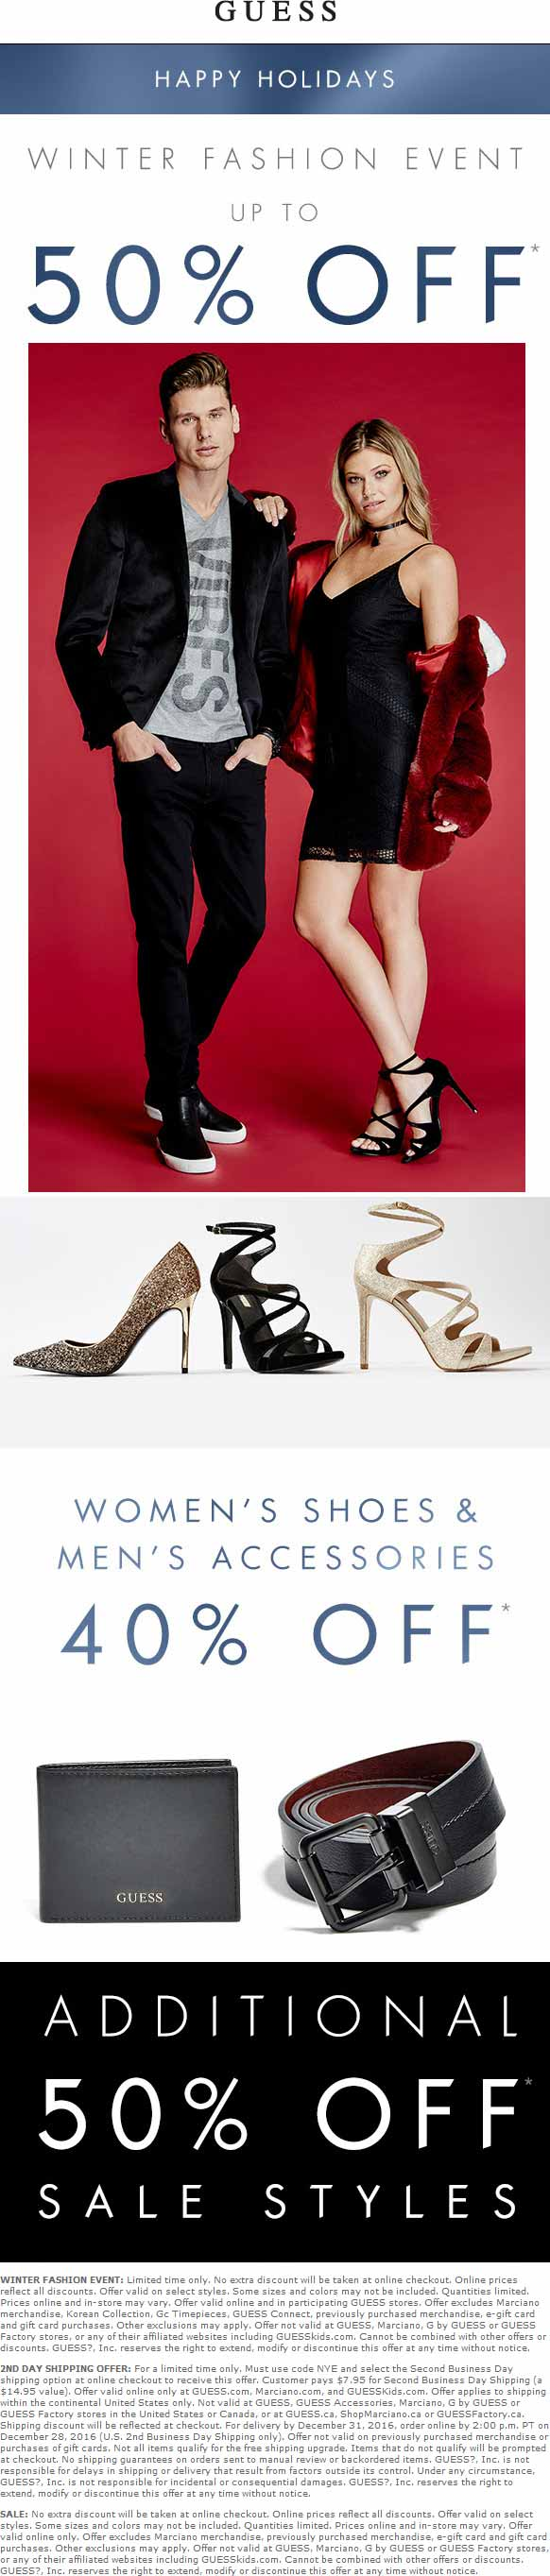 Guess Coupon March 2019 Extra 50% off sale items & more at Guess, ditto online